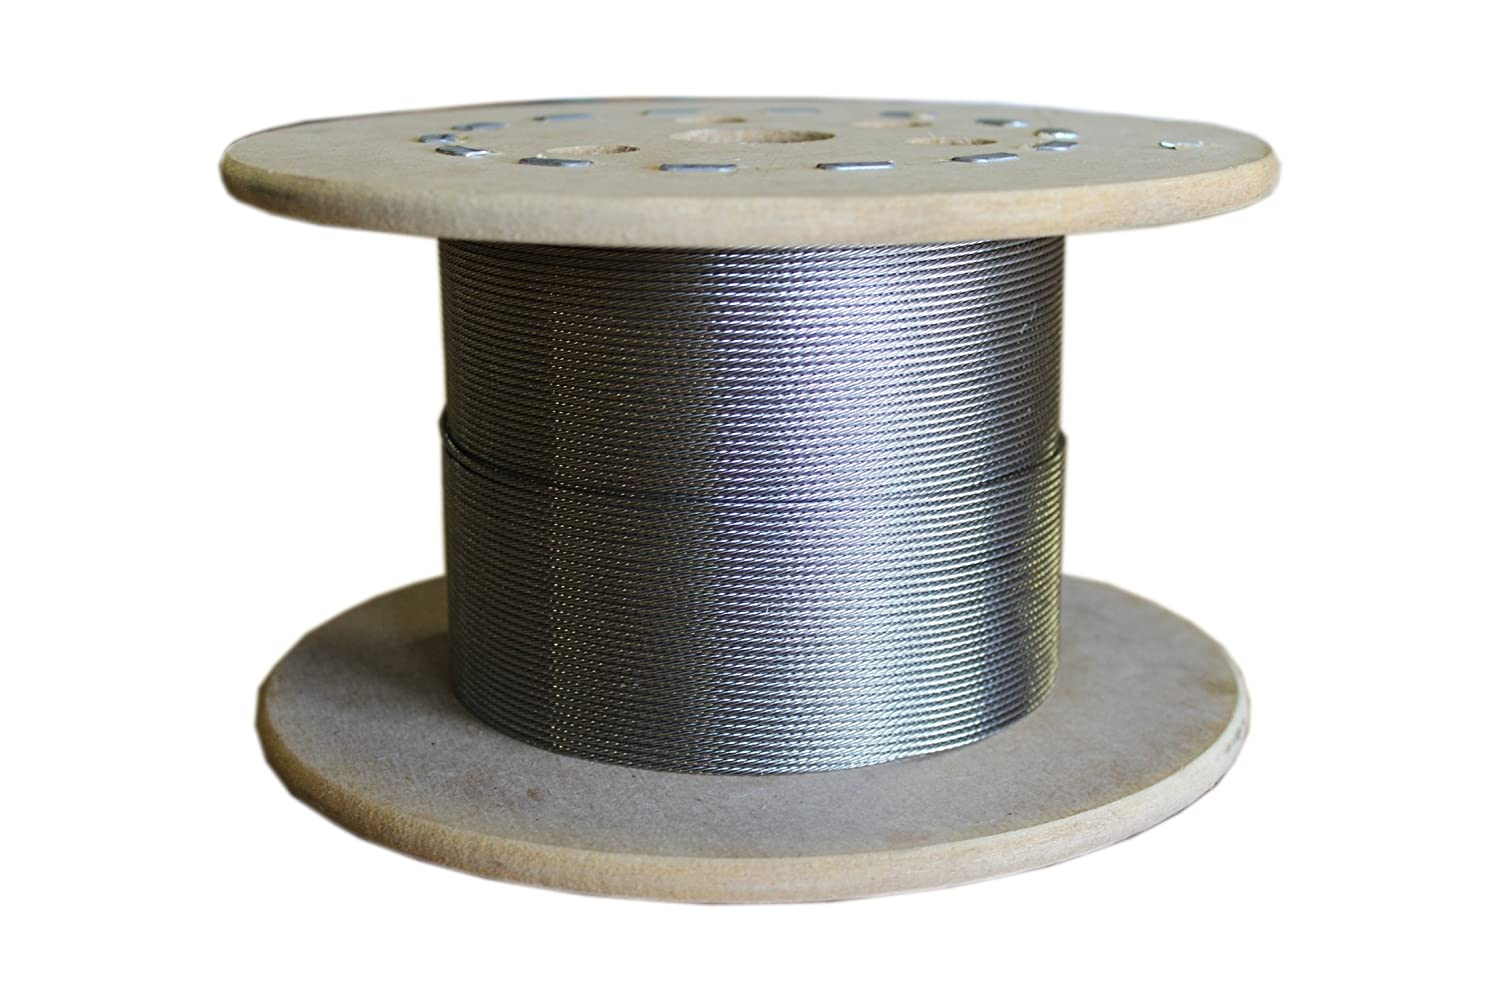 Loos Stainless Steel 302/304 Wire Rope, 1x7 Strand, 1/16' Bare OD, 250' Length, 500 lbs Breaking Strength 1/16 Bare OD 250' Length Loos & Co SC021XXXX-0250S